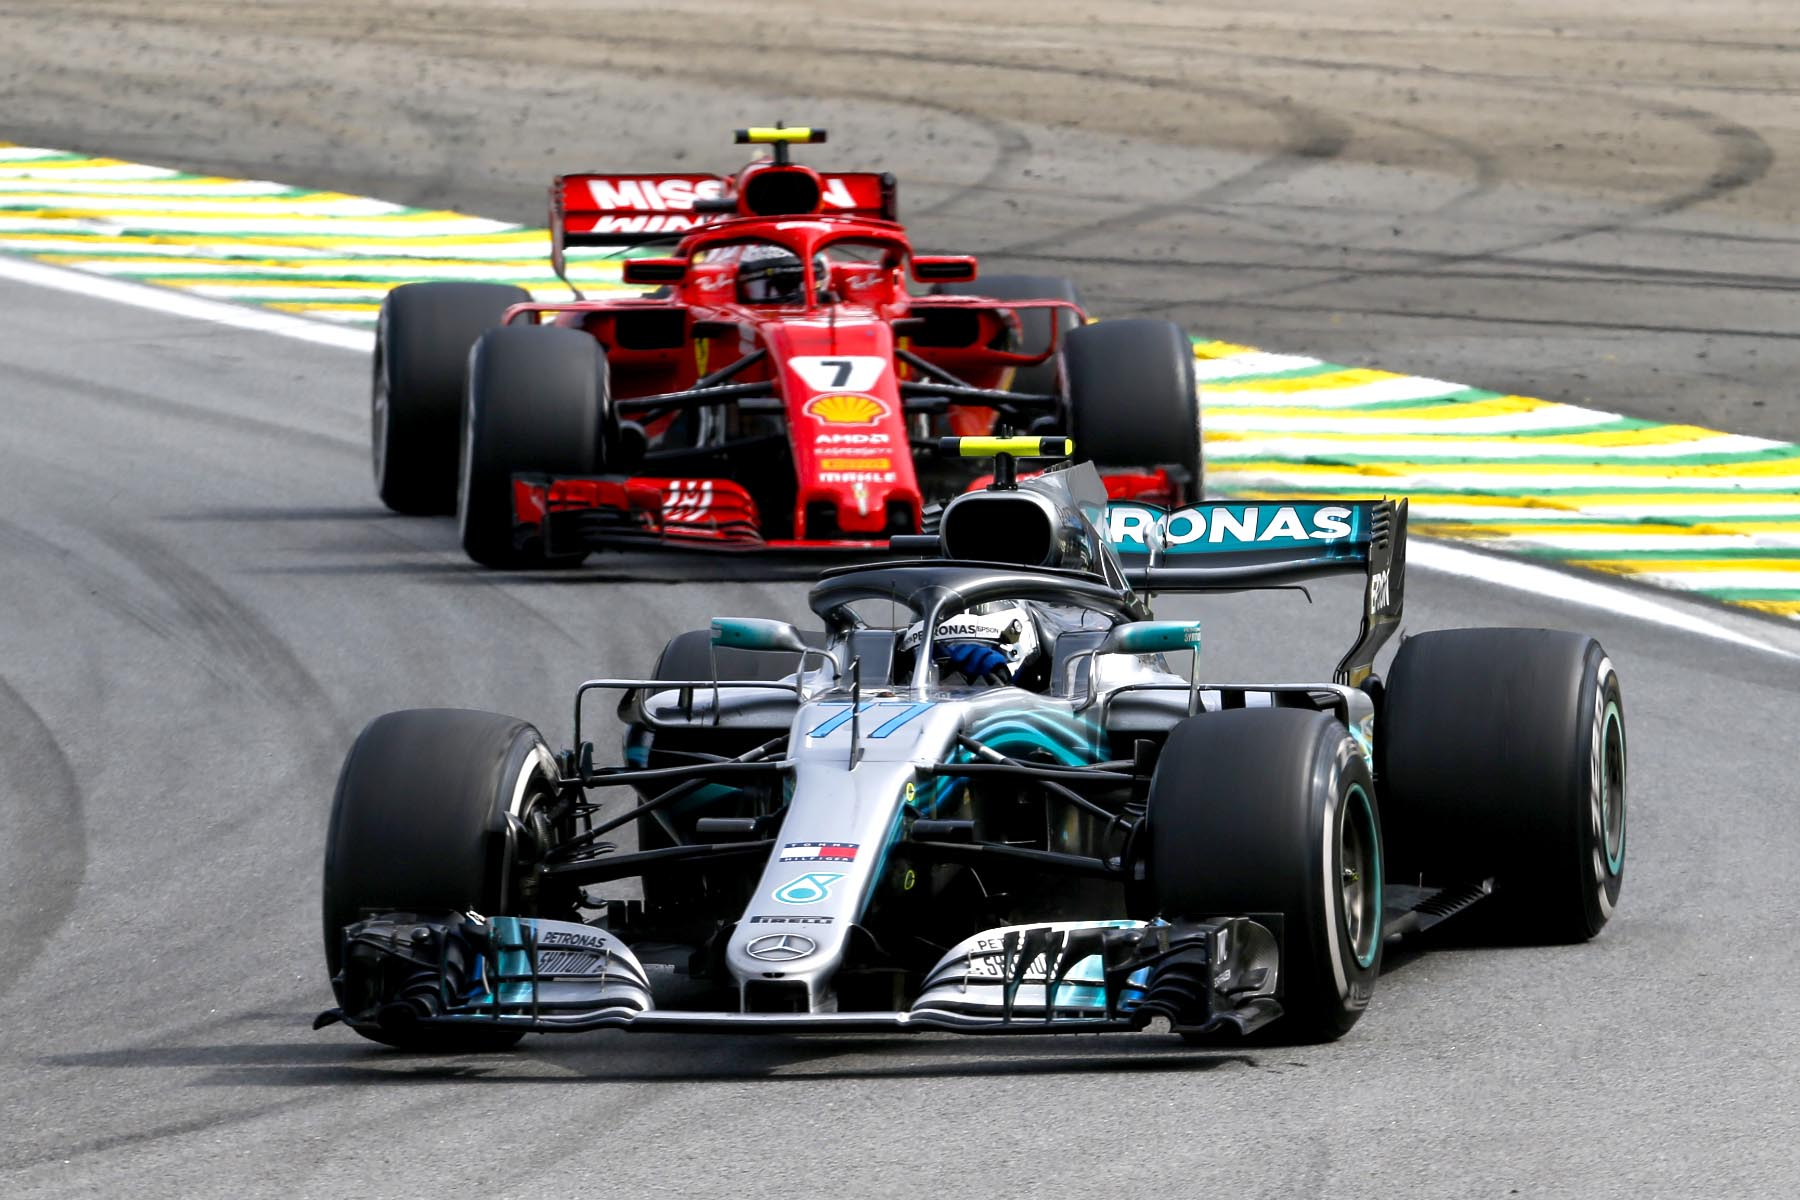 Mercedes's Valtteri Bottas leads Ferrari's Kimi Raikkonen at the 2018 Brazilian Grand Prix.